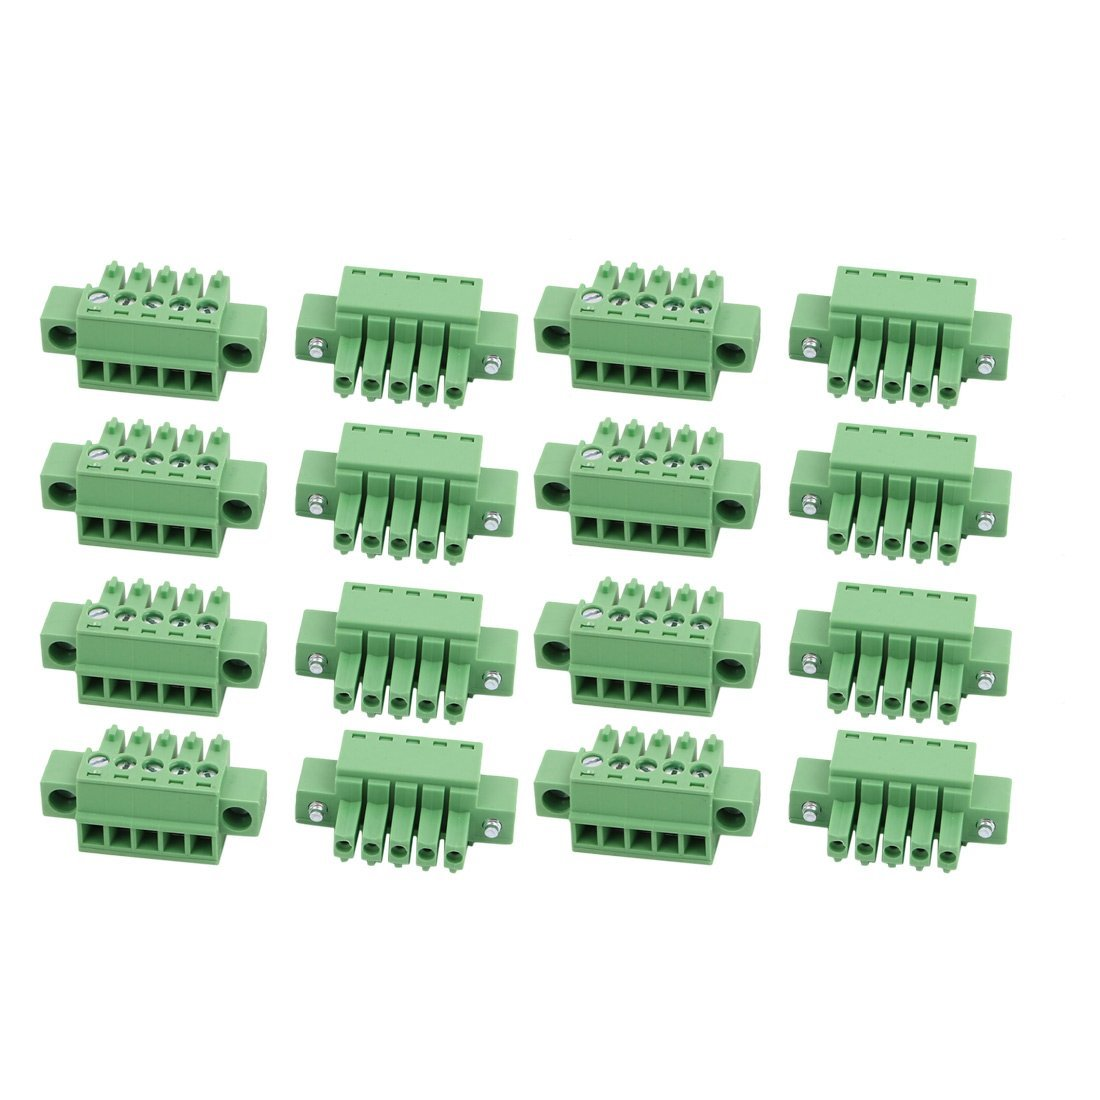 uxcell 15 Pcs LC1M AC300V 8A 3.5mm Pitch 5P PCB Mount Terminal Block Wire Connector